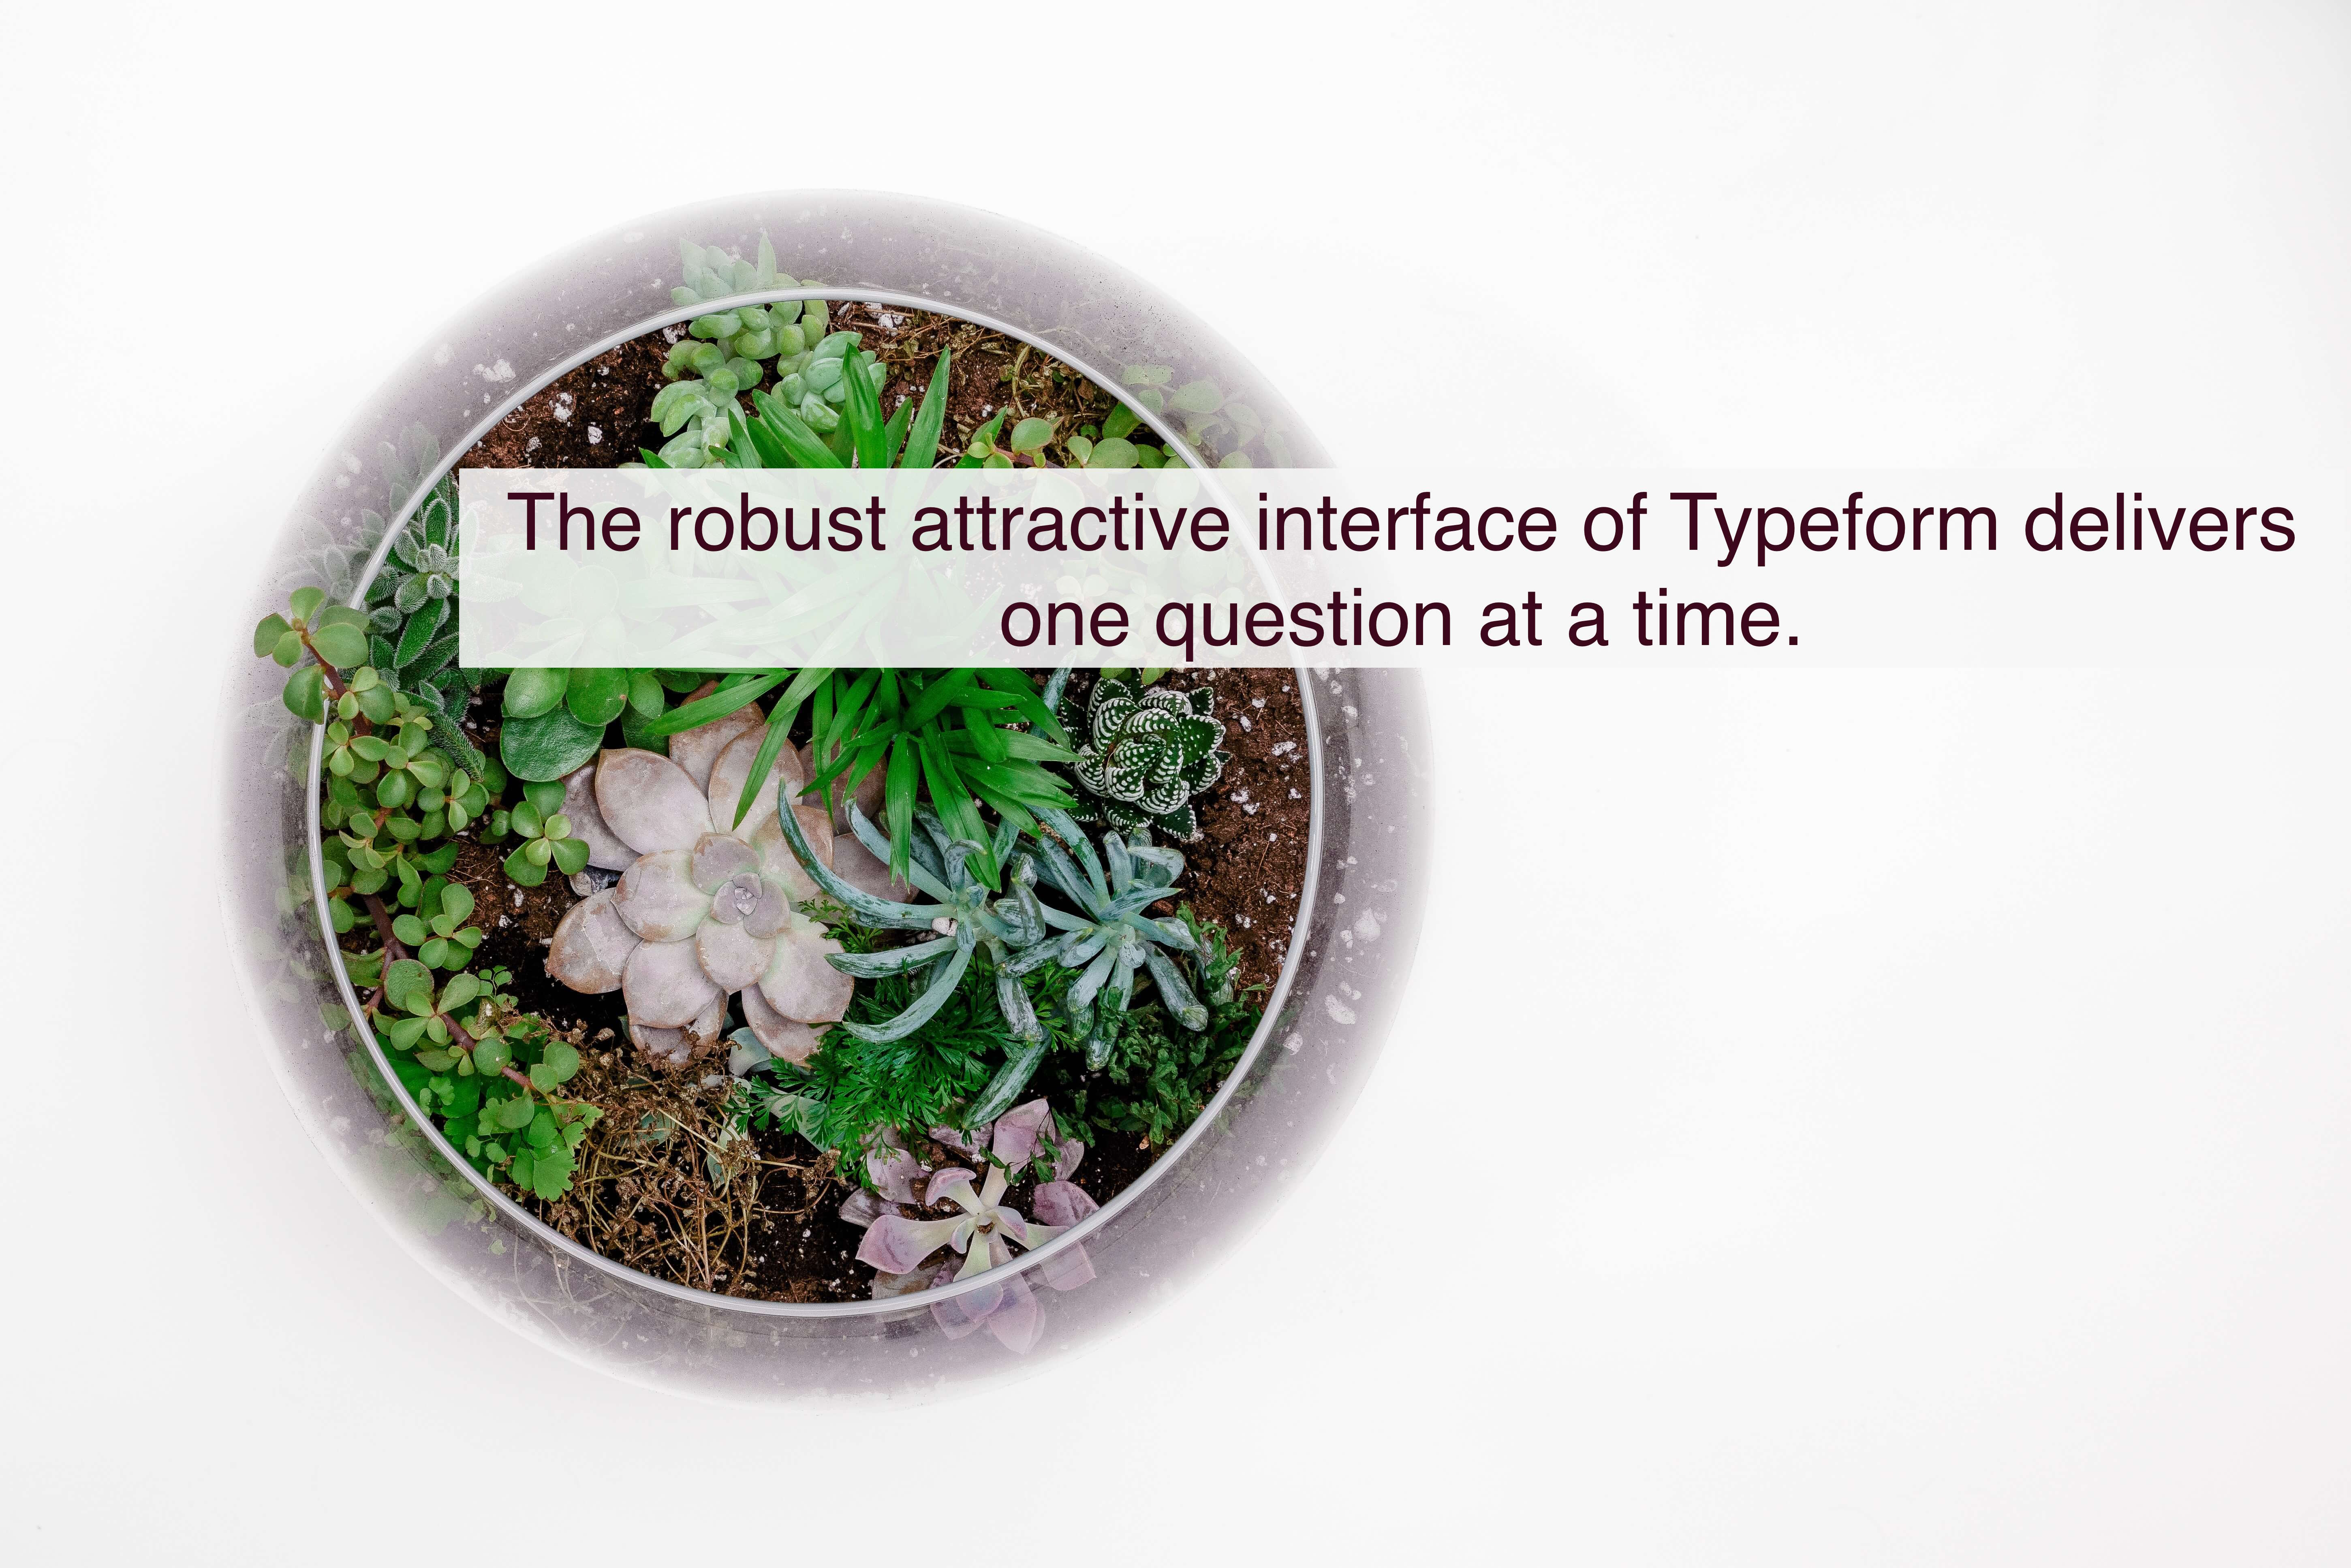 The robust attractive interface of Typeform delivers one question at a time.